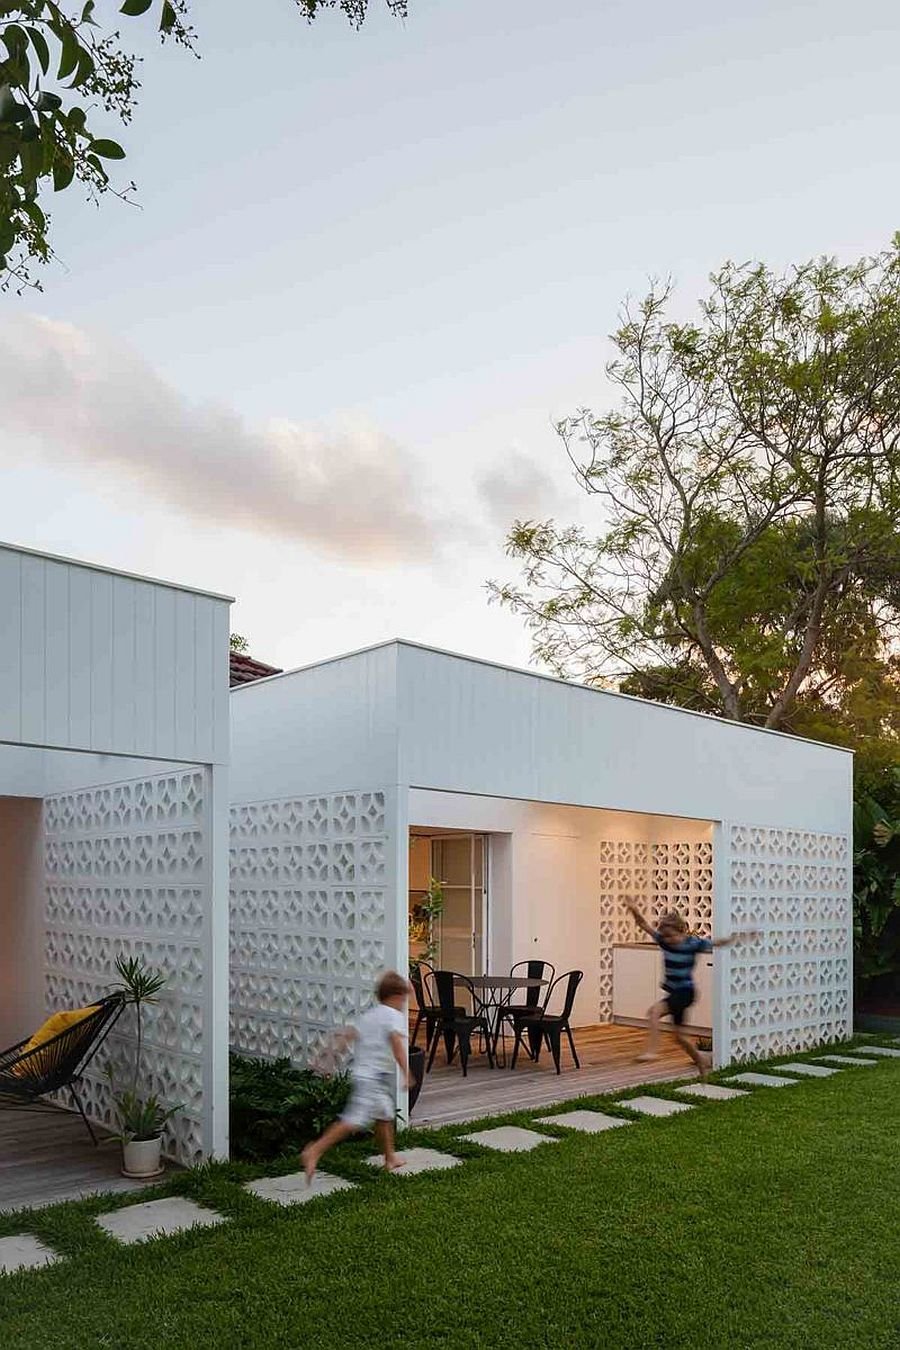 Breeze block walls turn the rooms into sheltered outdoor space with plenty of ventilation